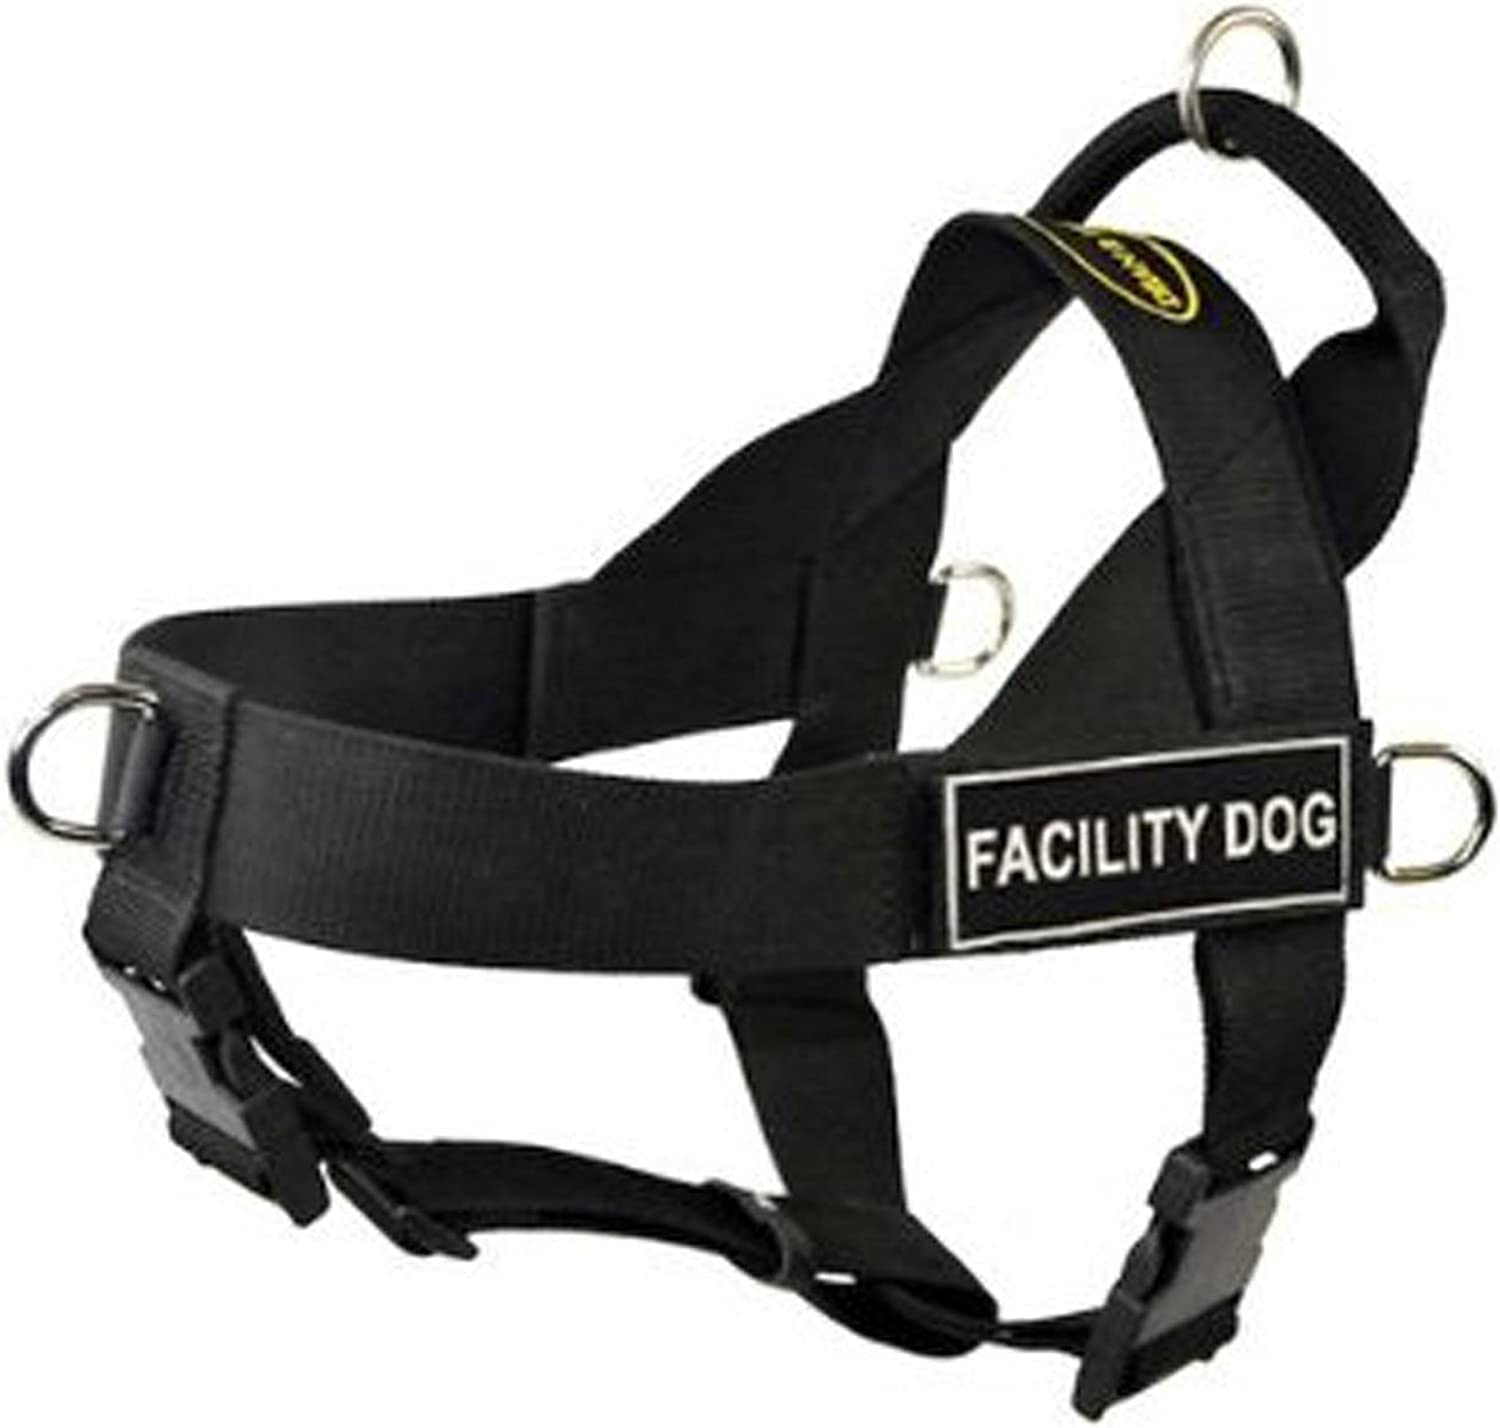 DT Universal No Pull Dog Harness, Facility Dog, Black, XLarge  Fits Girth Size  91cm to 119cm